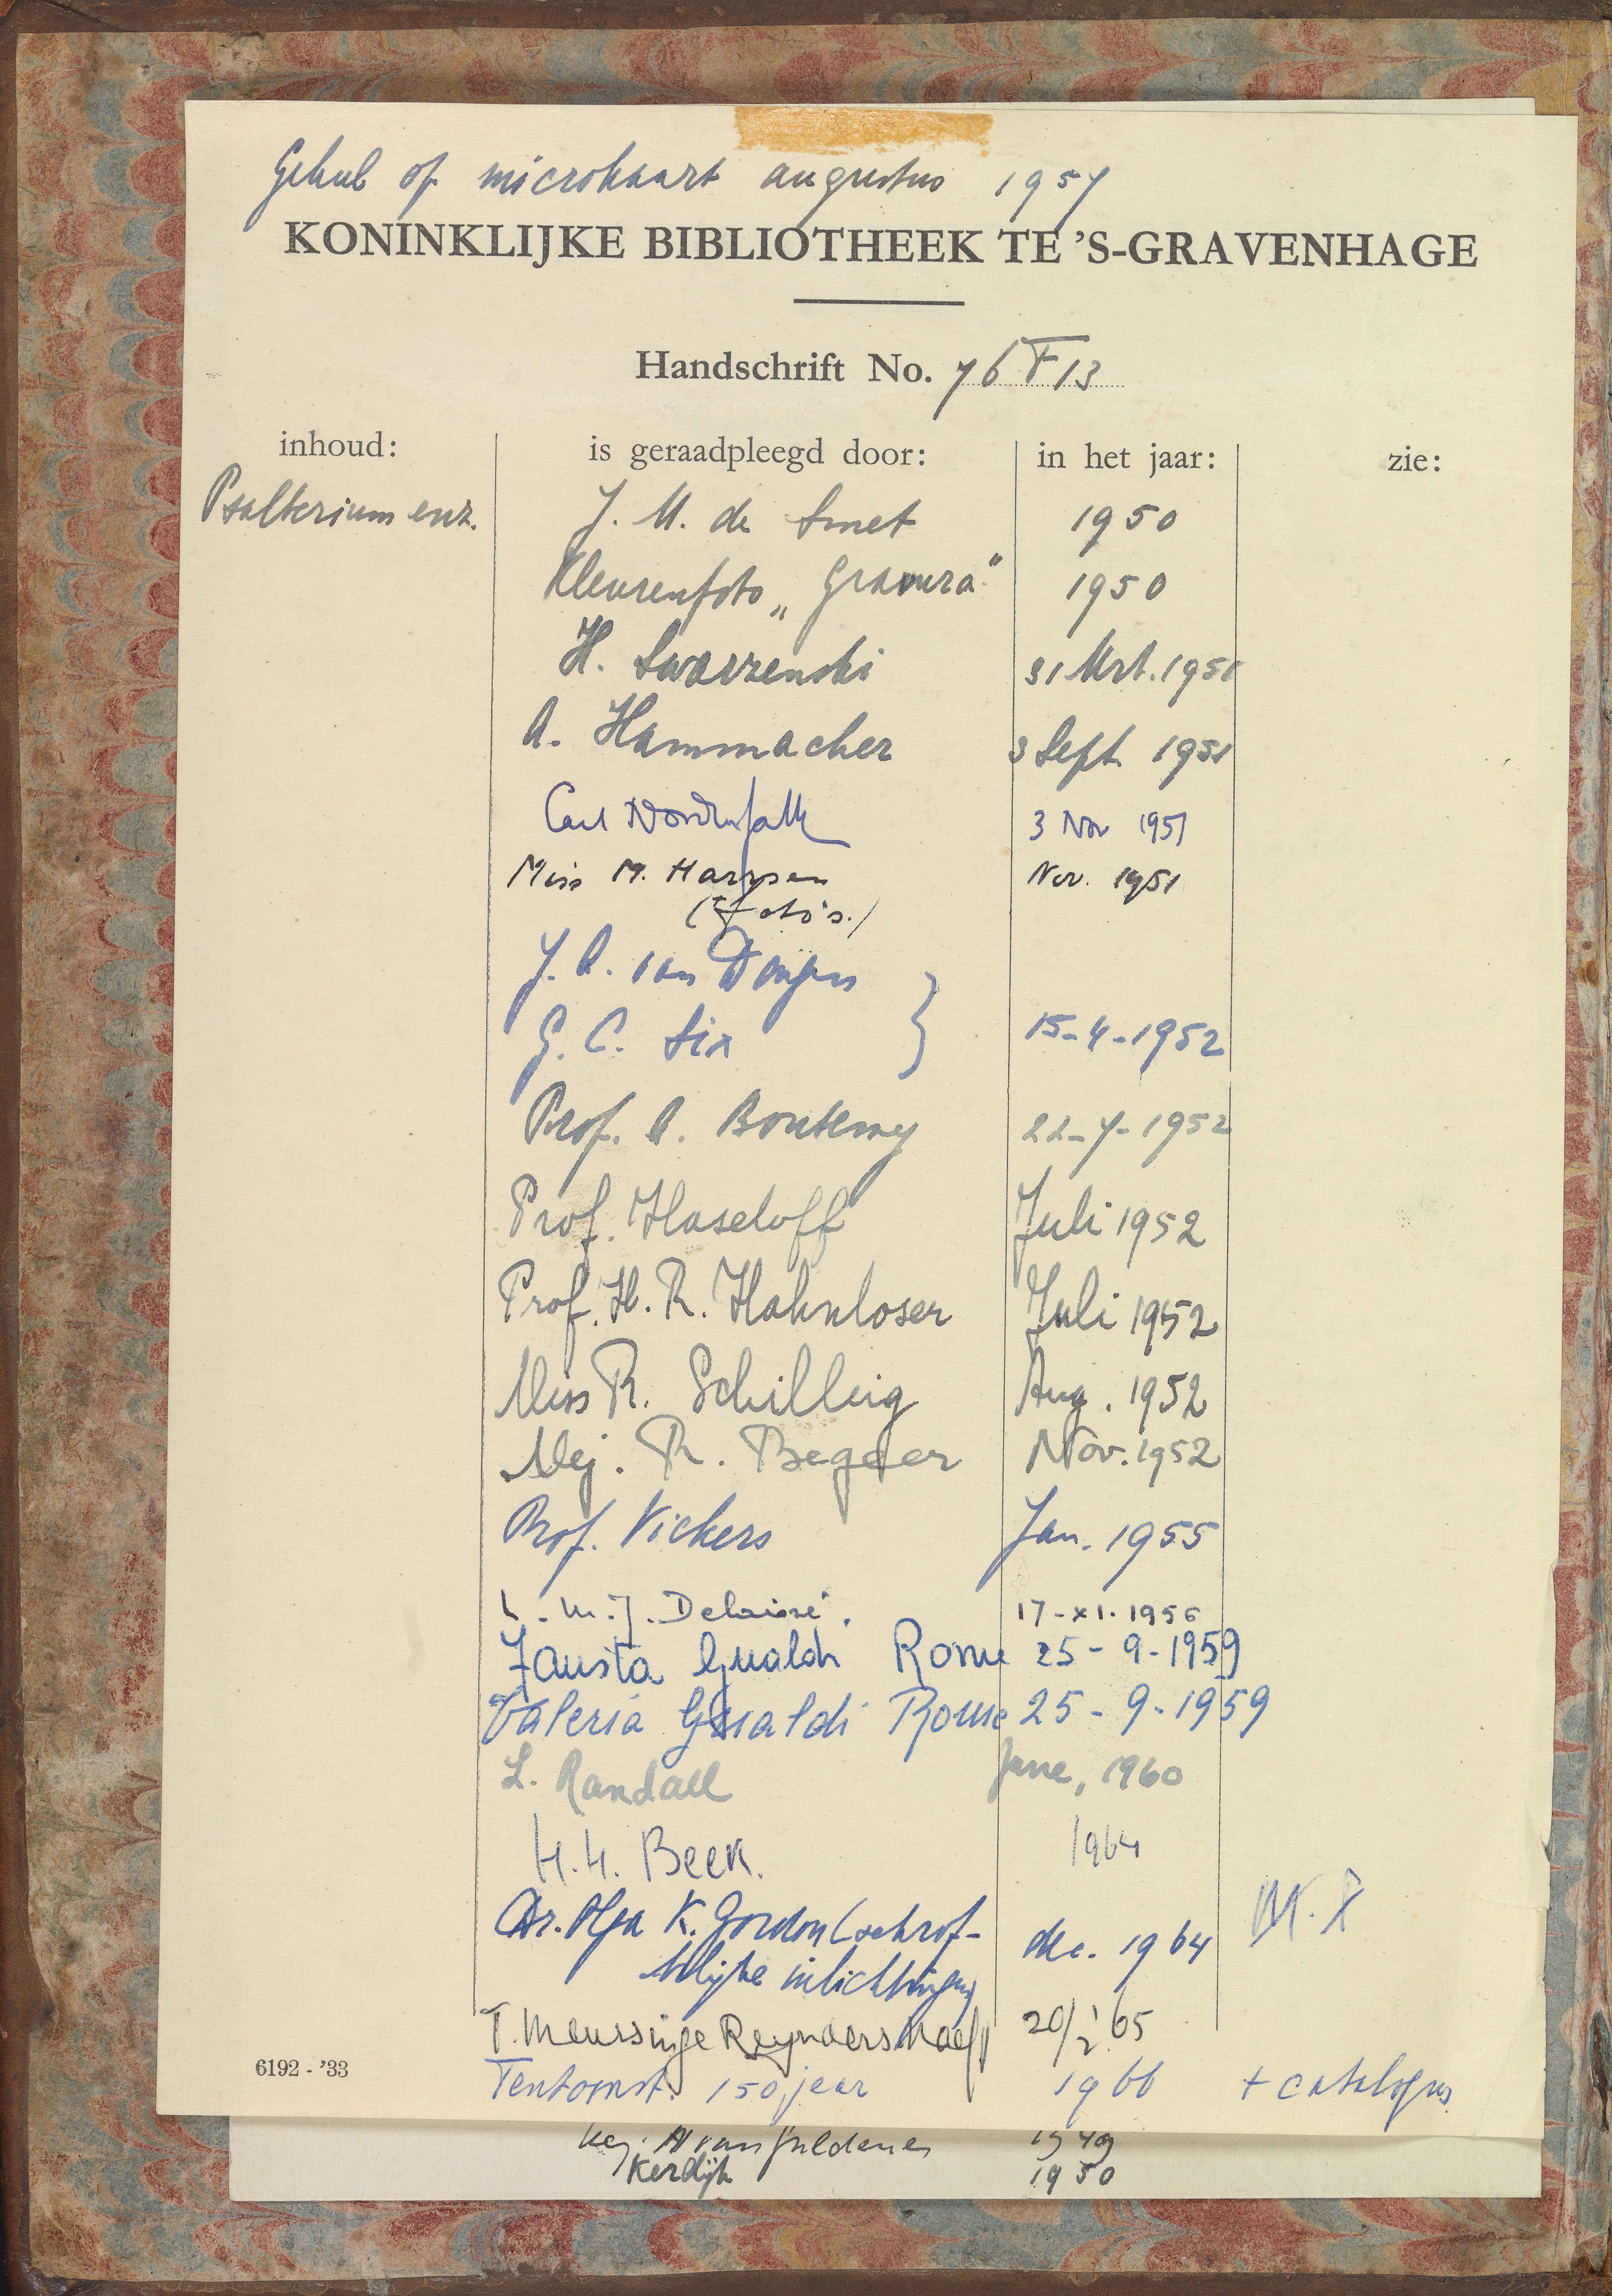 File Check Out Card file:library check-out card (1950-1966) in the psalter of